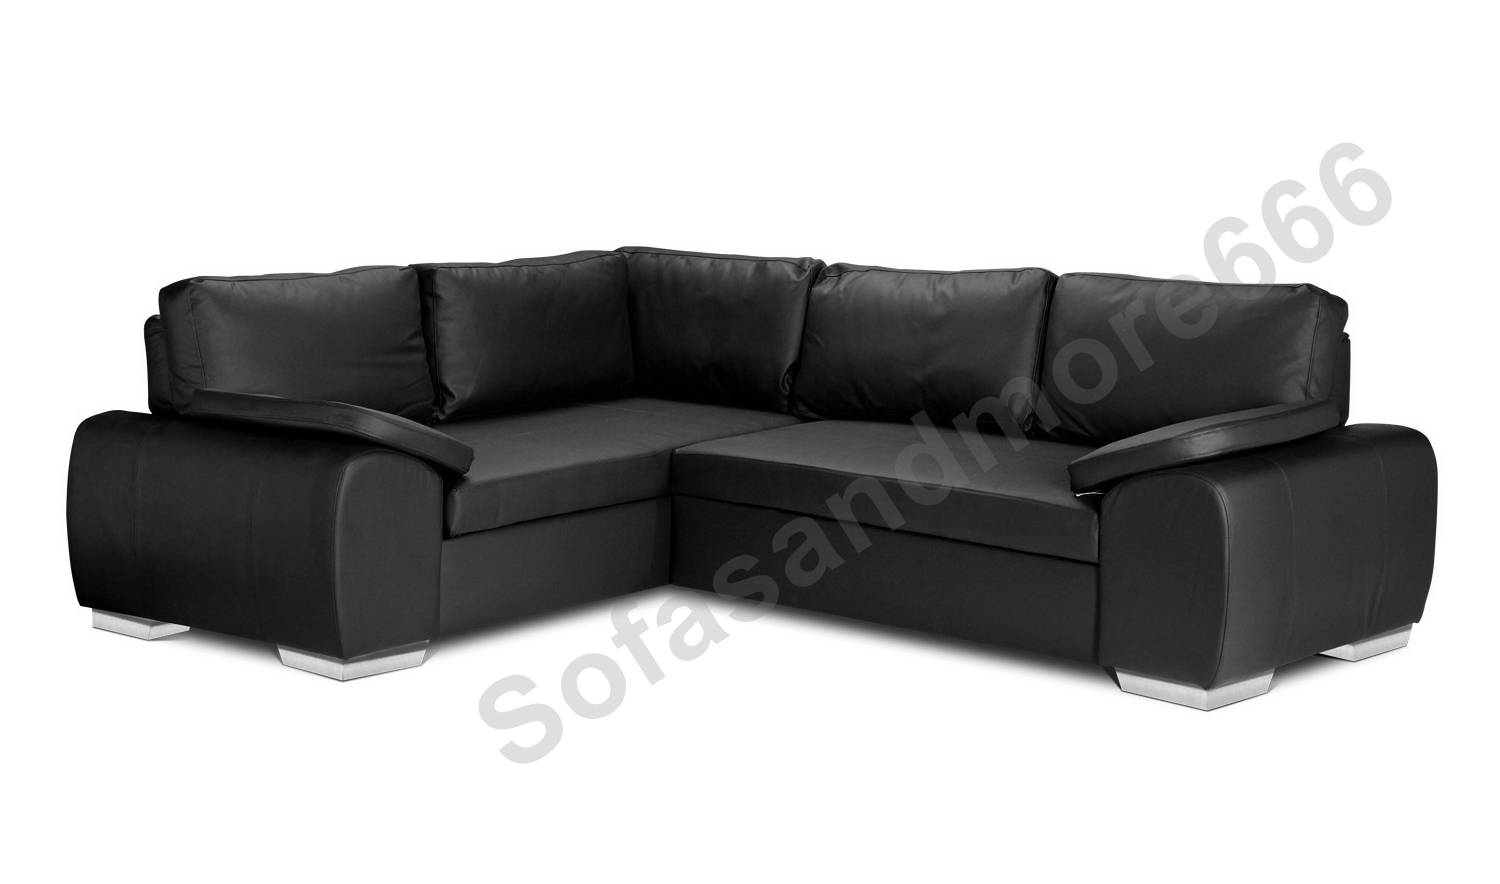 Brand New Enzo Corner Sofa Bed With Storage Black Brown Cream Faux inside Corner Couch Bed (Image 7 of 30)